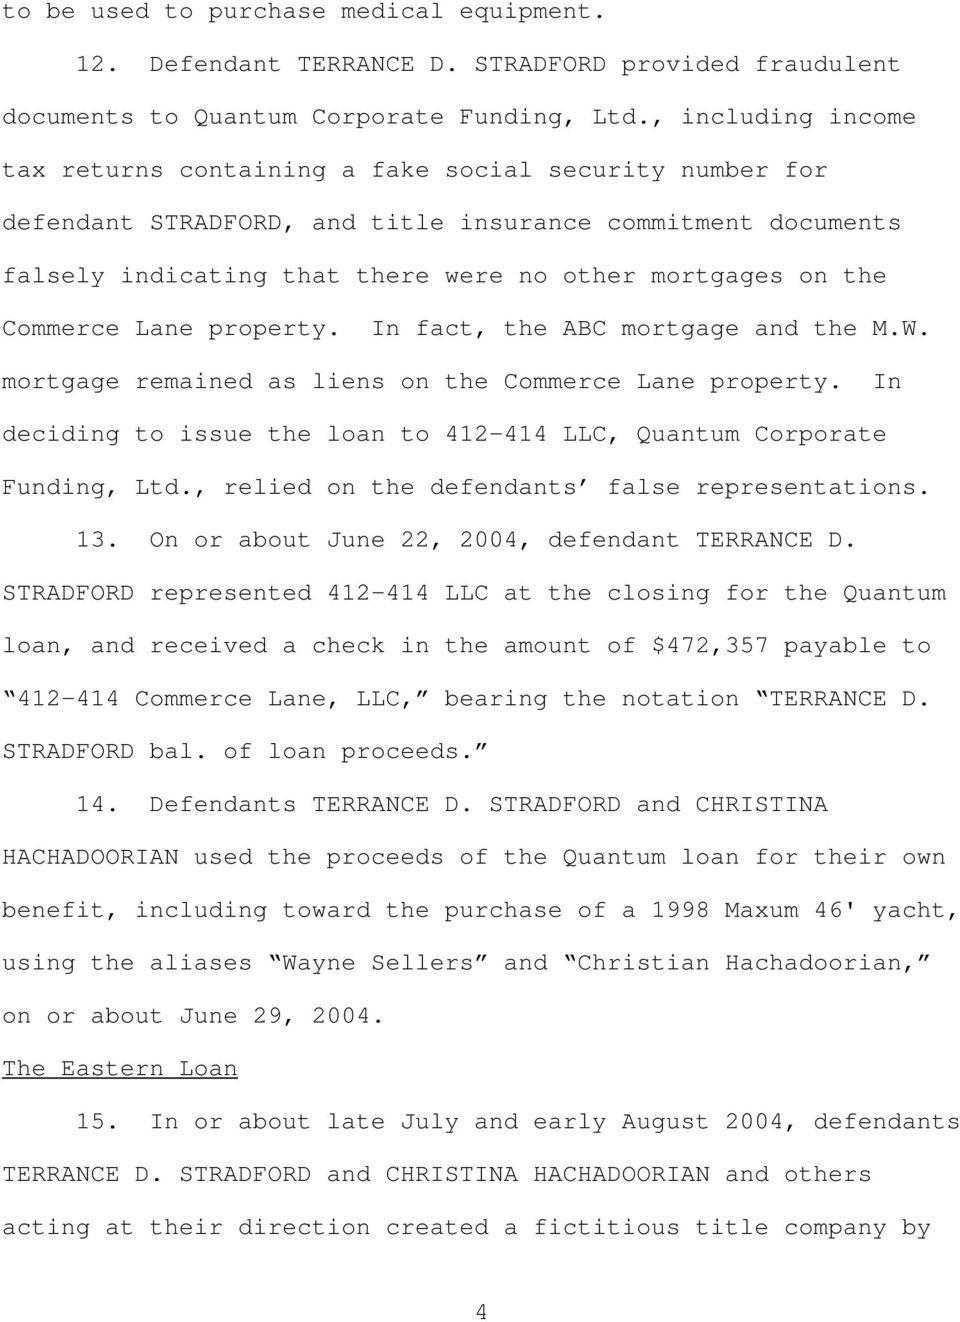 Commerce Lane property. In fact, the ABC mortgage and the M.W. mortgage remained as liens on the Commerce Lane property. In deciding to issue the loan to 412-414 LLC, Quantum Corporate Funding, Ltd.